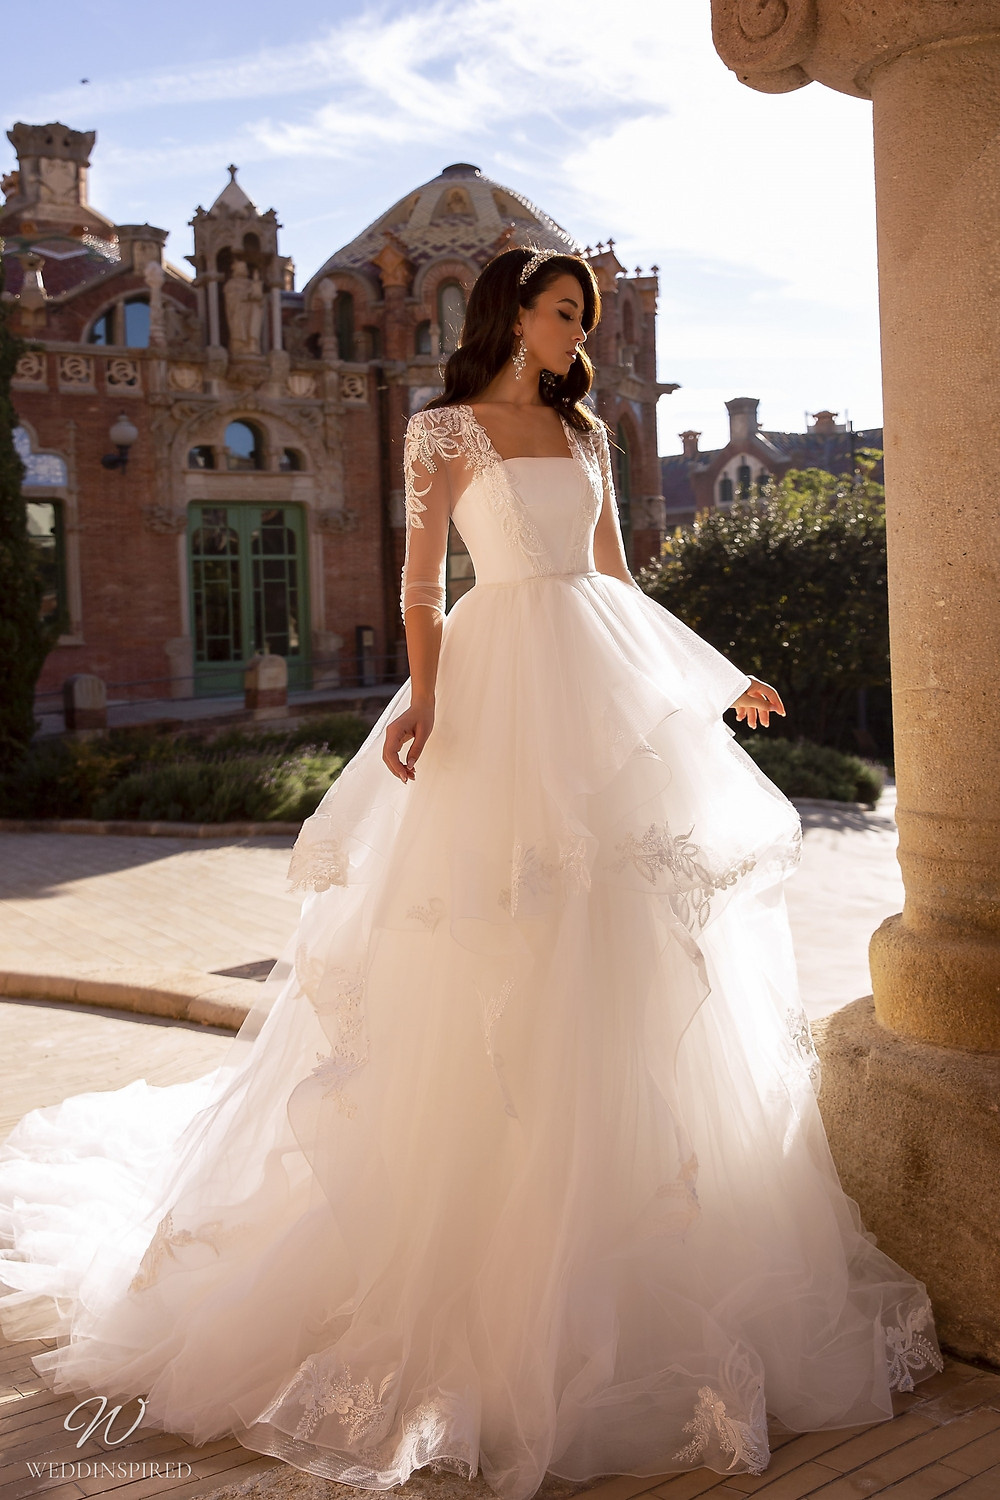 A Maks Mariano tulle ball gown wedding dress with ruffle skirt and long sleeves